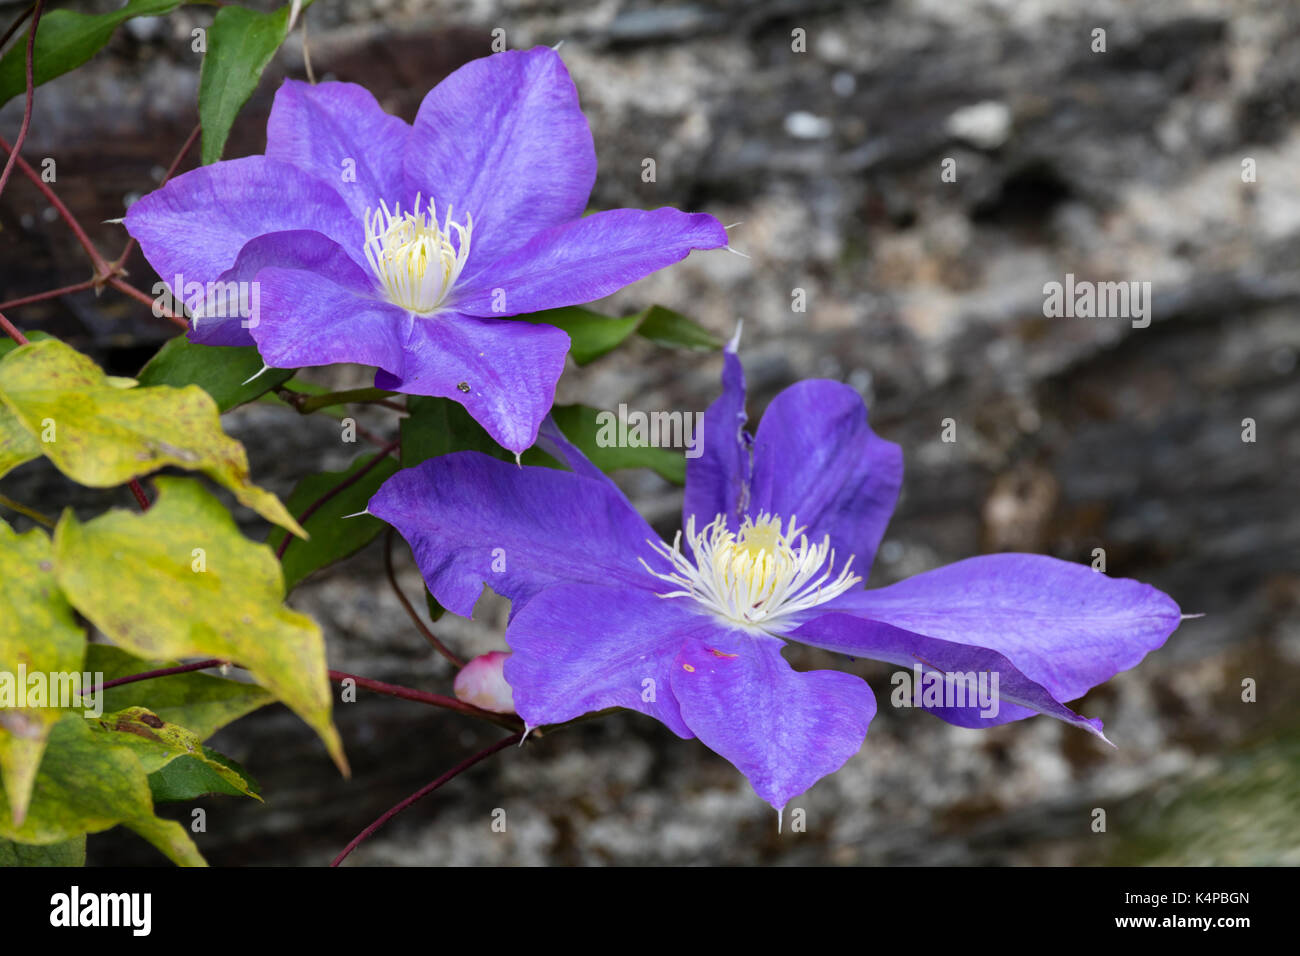 Lare,blue flowers of the hardy climber, Clematis 'General Sikorski', taken during it's later summer flowering period - Stock Image